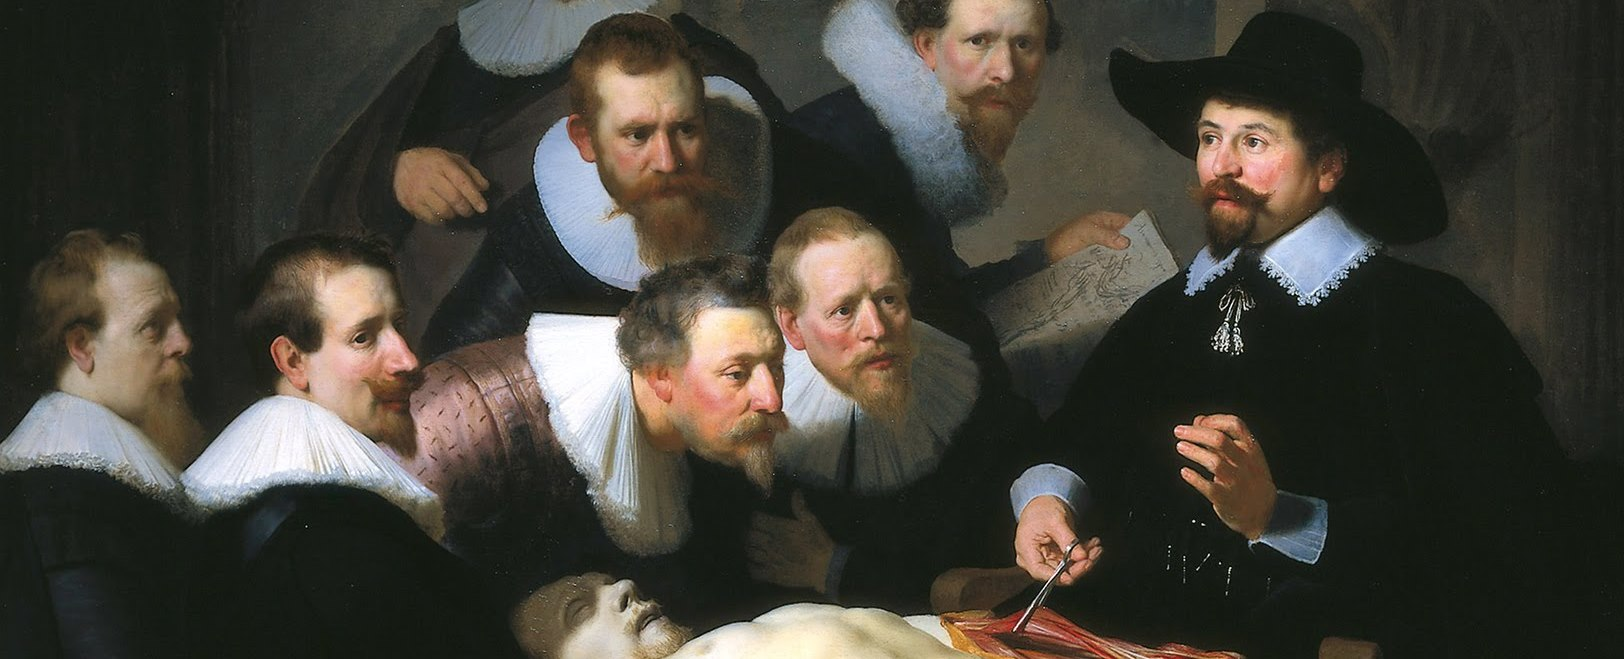 The Anatomy Lesson of Dr. Nicolaes Tulp rembrandt dutch painters